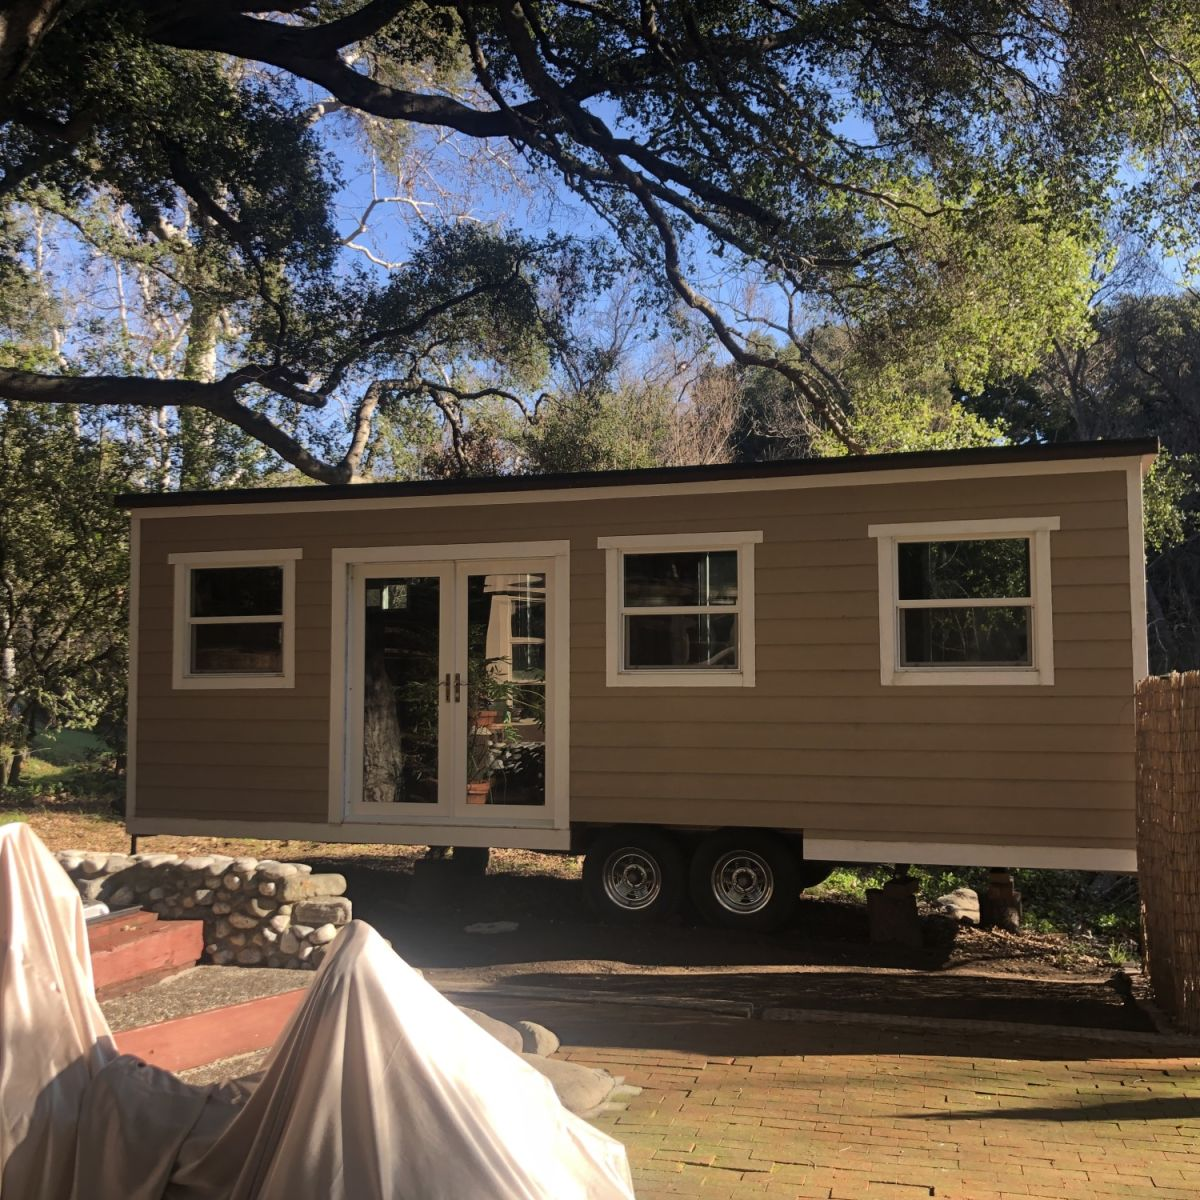 Tiny Houses For Sale In California - Tiny Houses For Sale, Rent and on small victorian bathrooms, small modular bathrooms, small yurt bathrooms, small ranch bathrooms, small bathroom remodel before and after, small farmhouse bathrooms, small garage bathrooms, small bungalow bathrooms, small apartment bathrooms, small restaurant bathrooms, small office bathrooms, small hotel bathrooms, small european bathrooms, small log home bathrooms, small commercial bathrooms, small bathroom floor designs, small bathroom remodeling ideas, small cottage bathrooms, small zen bathrooms, rv bathrooms,